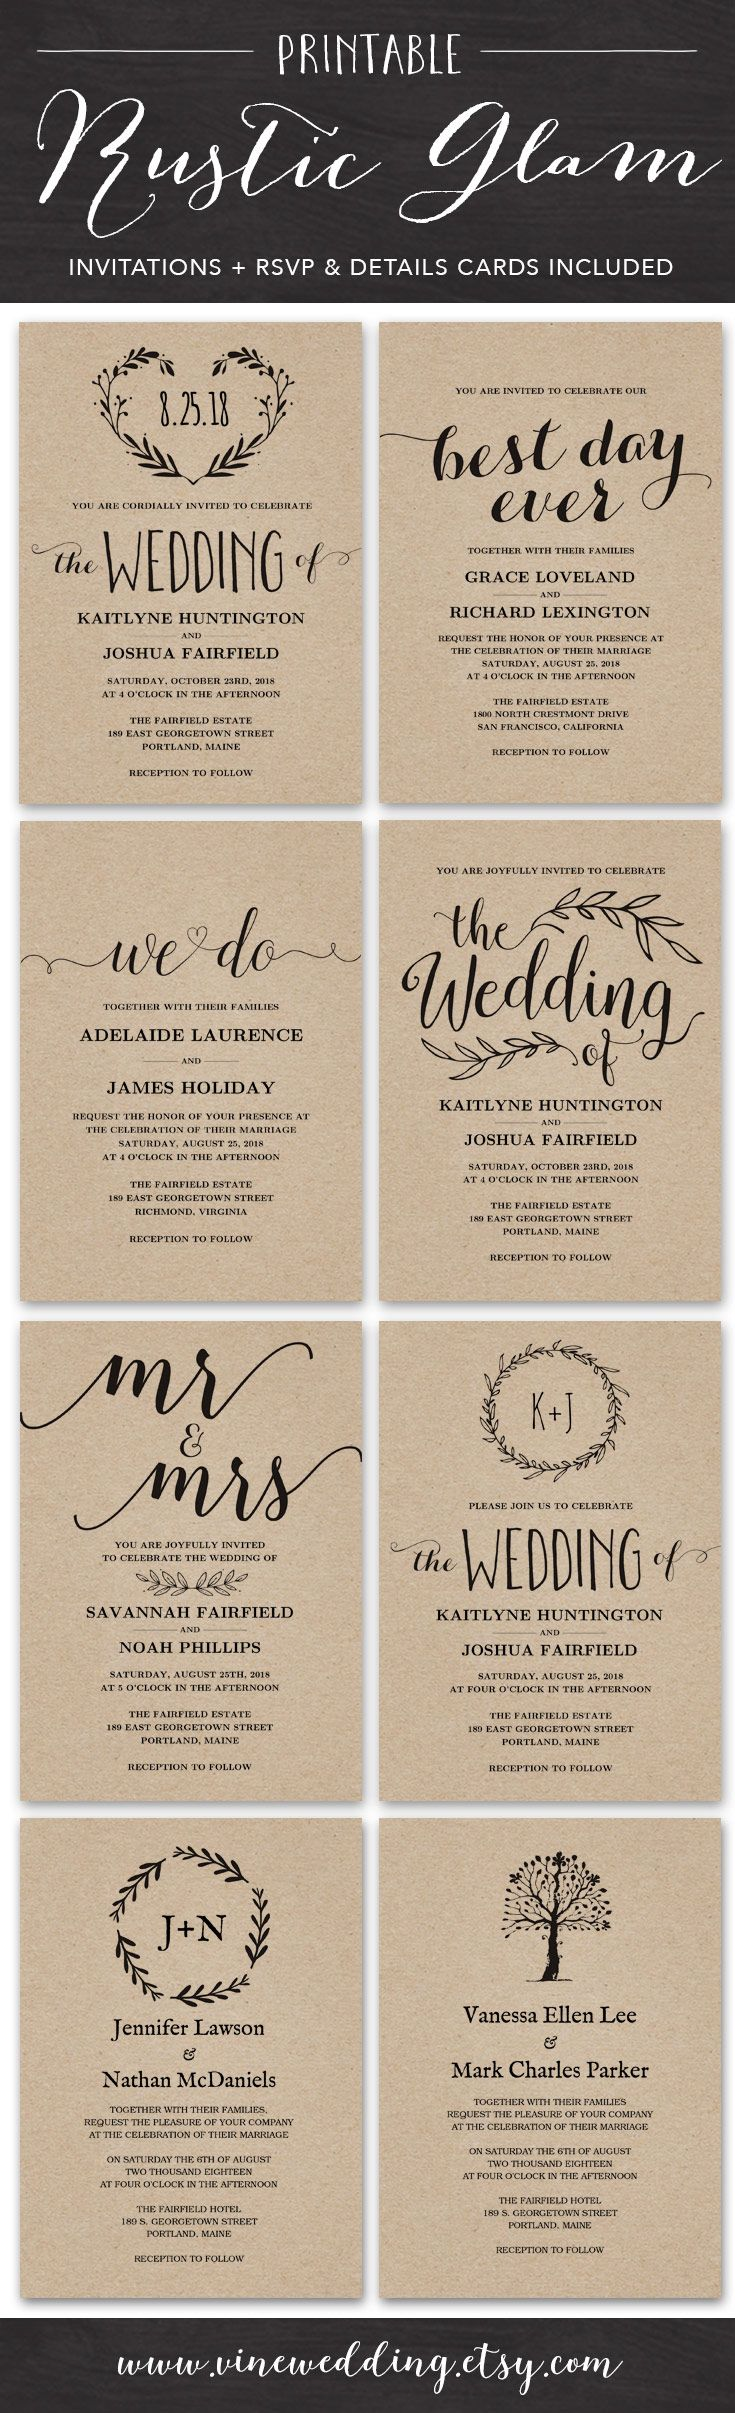 love quotes for invitations%0A Beautiful rustic wedding invitations  Editable instant download templates  you can print as many as you need   wedding  invitations  vinewedding    Pinterest